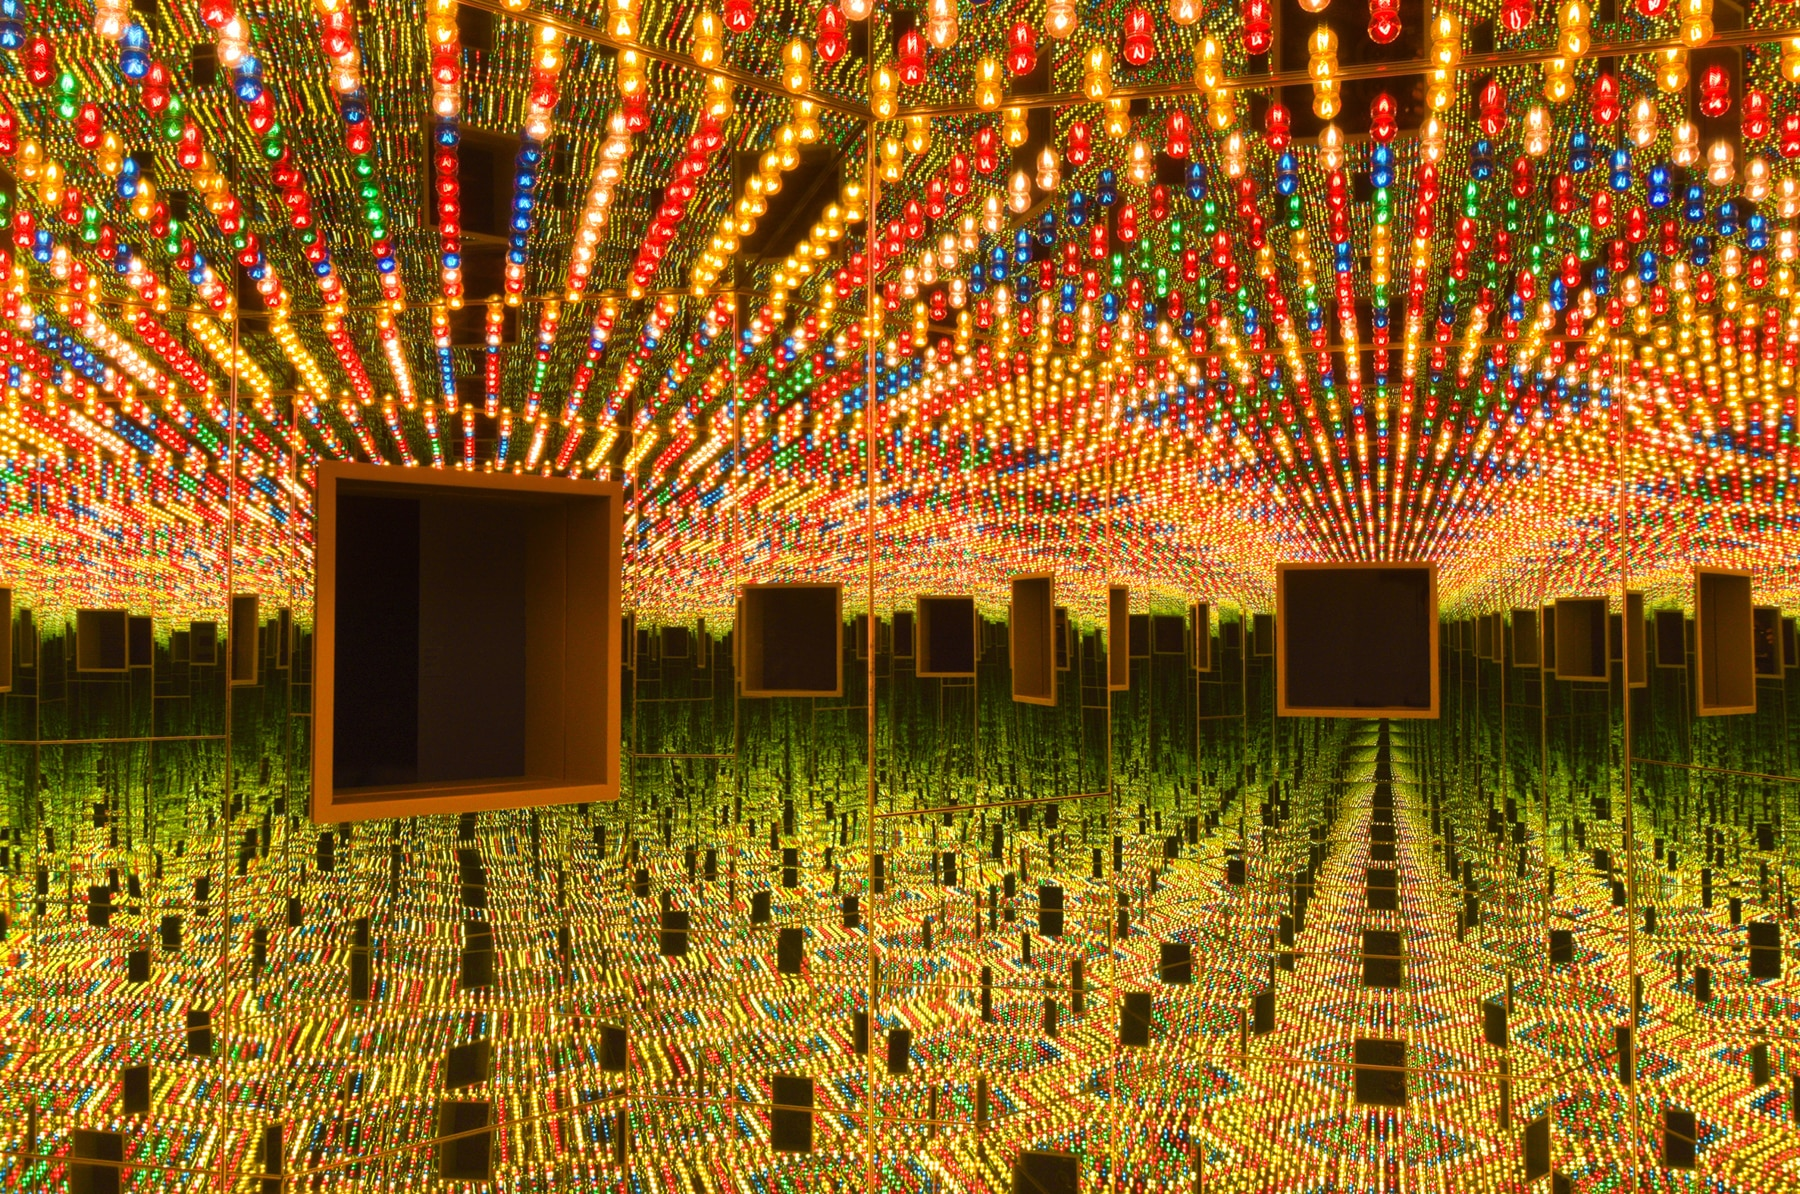 Ceiling filled with colored lightbulbs, in room of mirrors (HIrshhorn Museum)